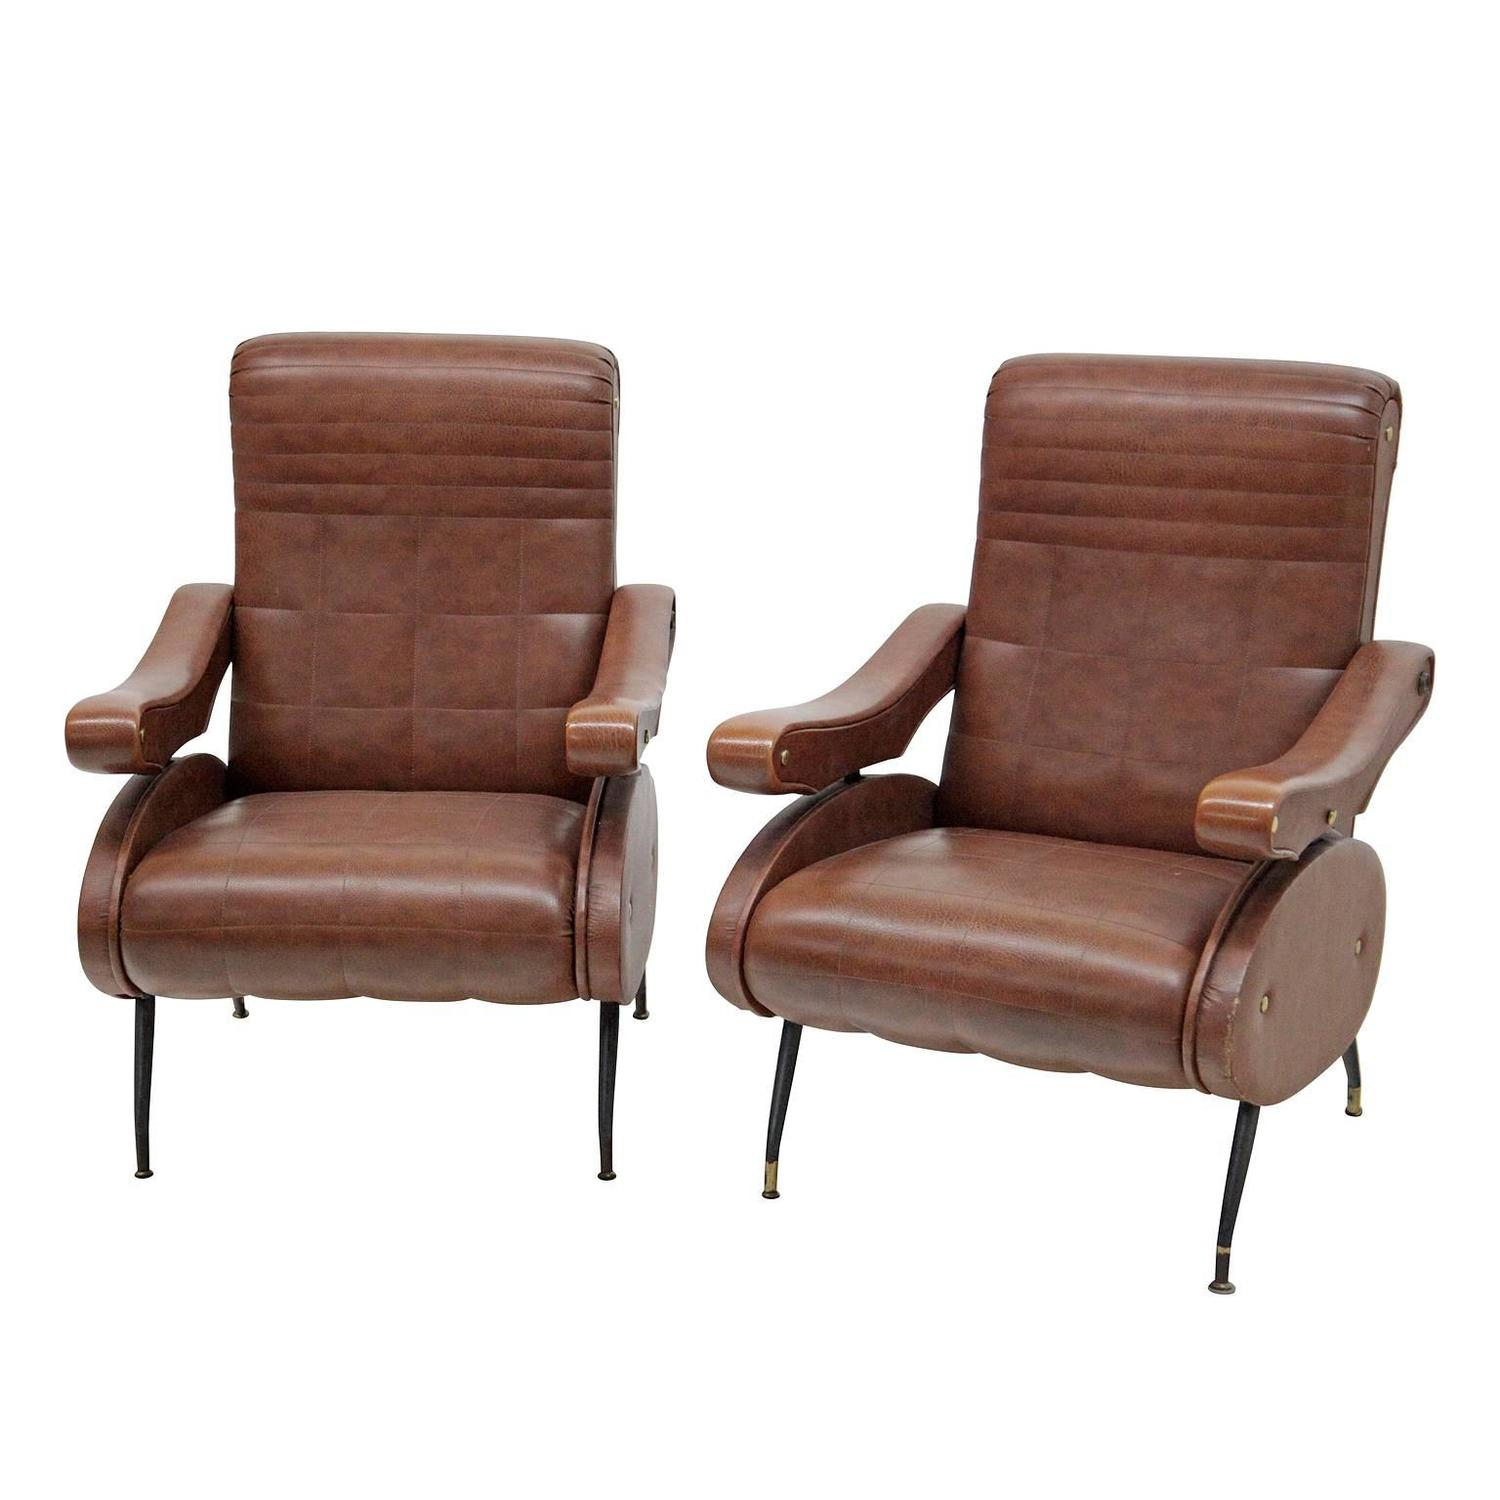 Pair of leather armchairs italy mid 20th century at 1stdibs for Mid 20th century furniture